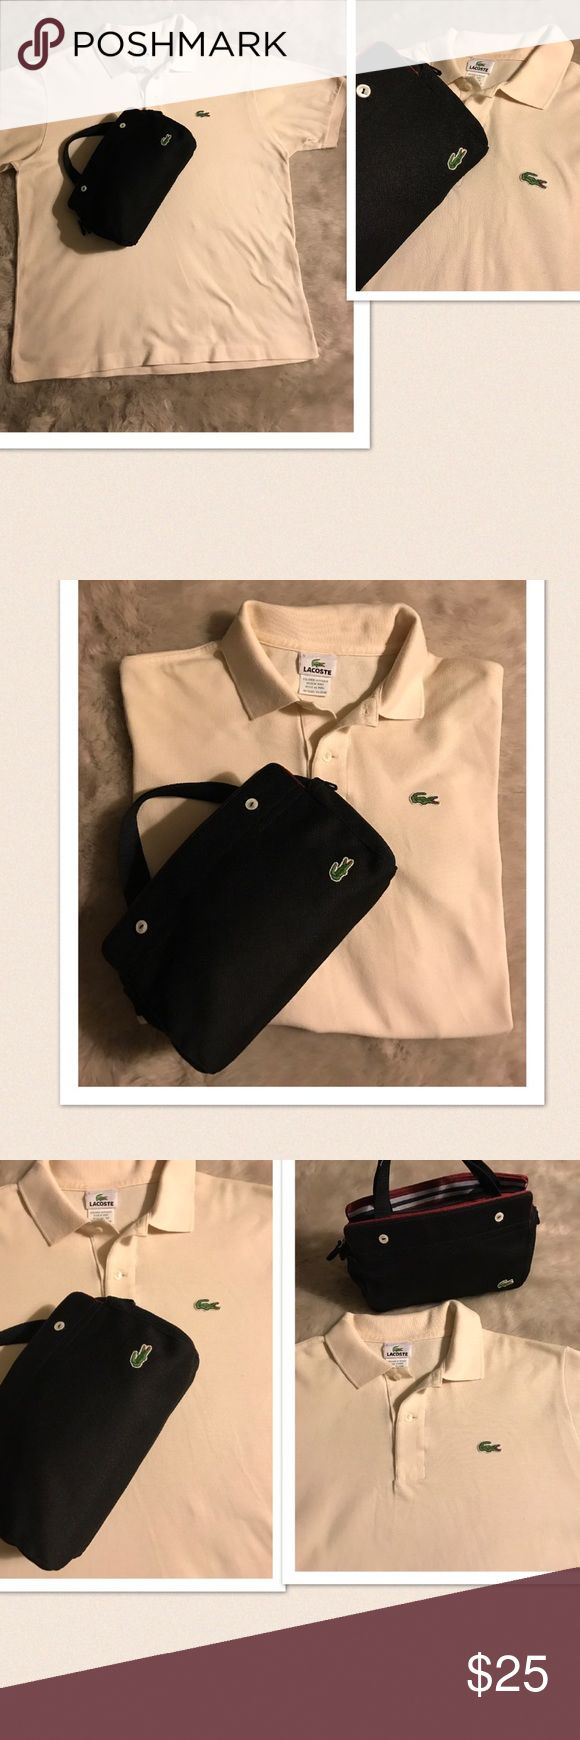 """Unisex Men's Women's Lacoste Polo Men's/ Unisex Lacoste Polo. Bag is available for sale. You will receive this Unisex polo by Lacoste. Size: 5. Pit-pit: 22.5"""", length: 26"""". Color: Tan/Cream. Gently washed & worn. Excellent condition. If this condition is not right for you do not purchase. Lacoste Shirts Polos"""